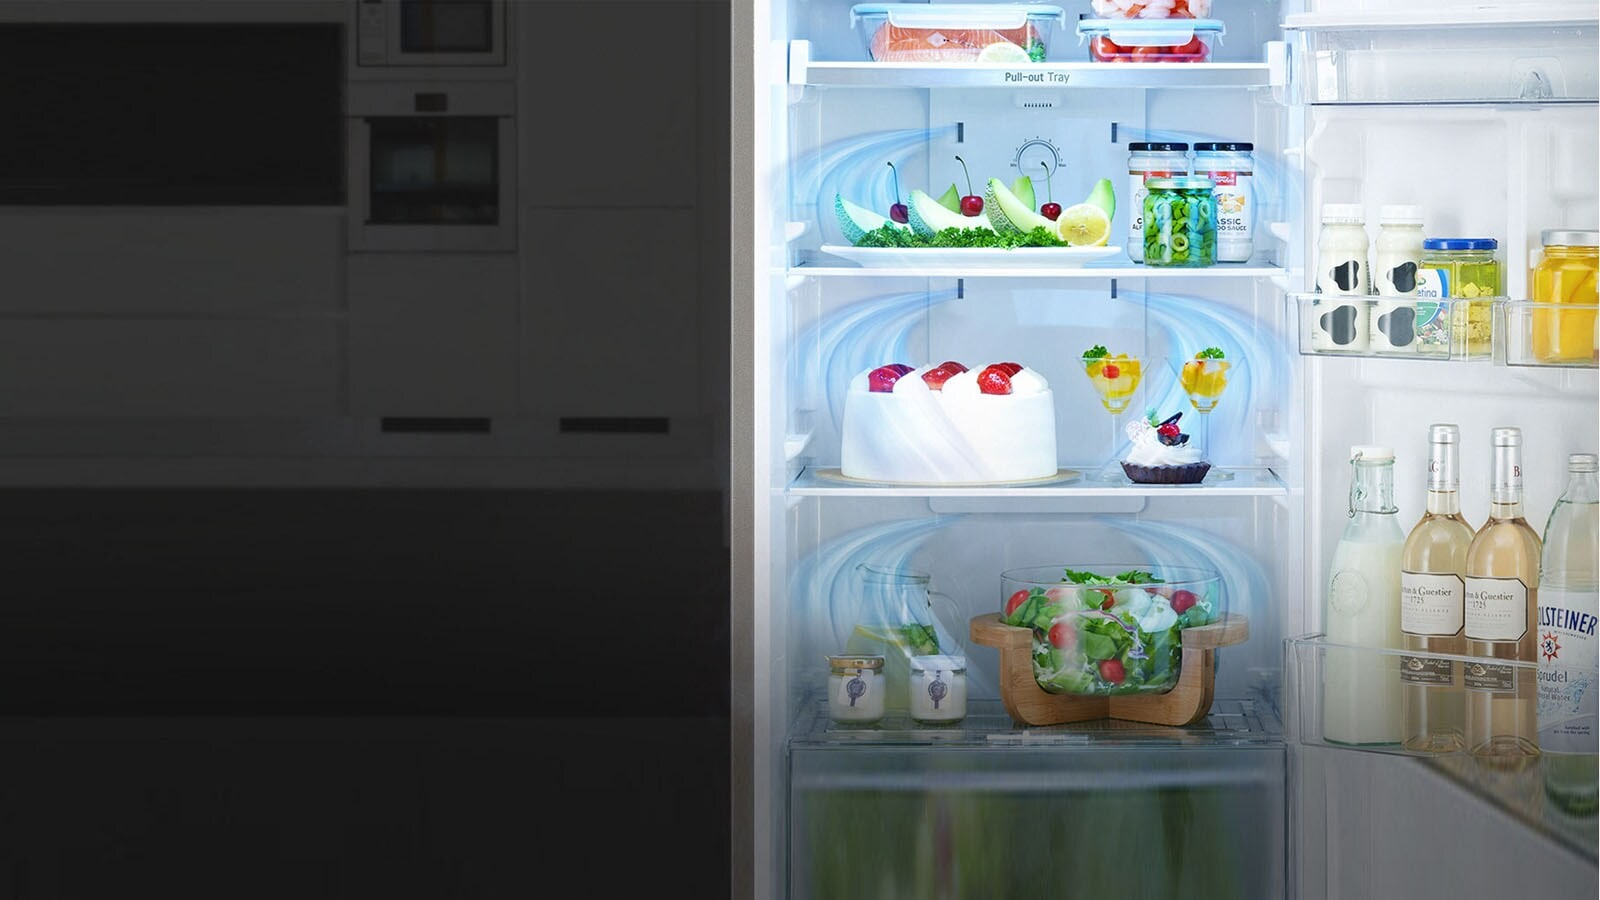 LG Multi Air Flow Refrigerator